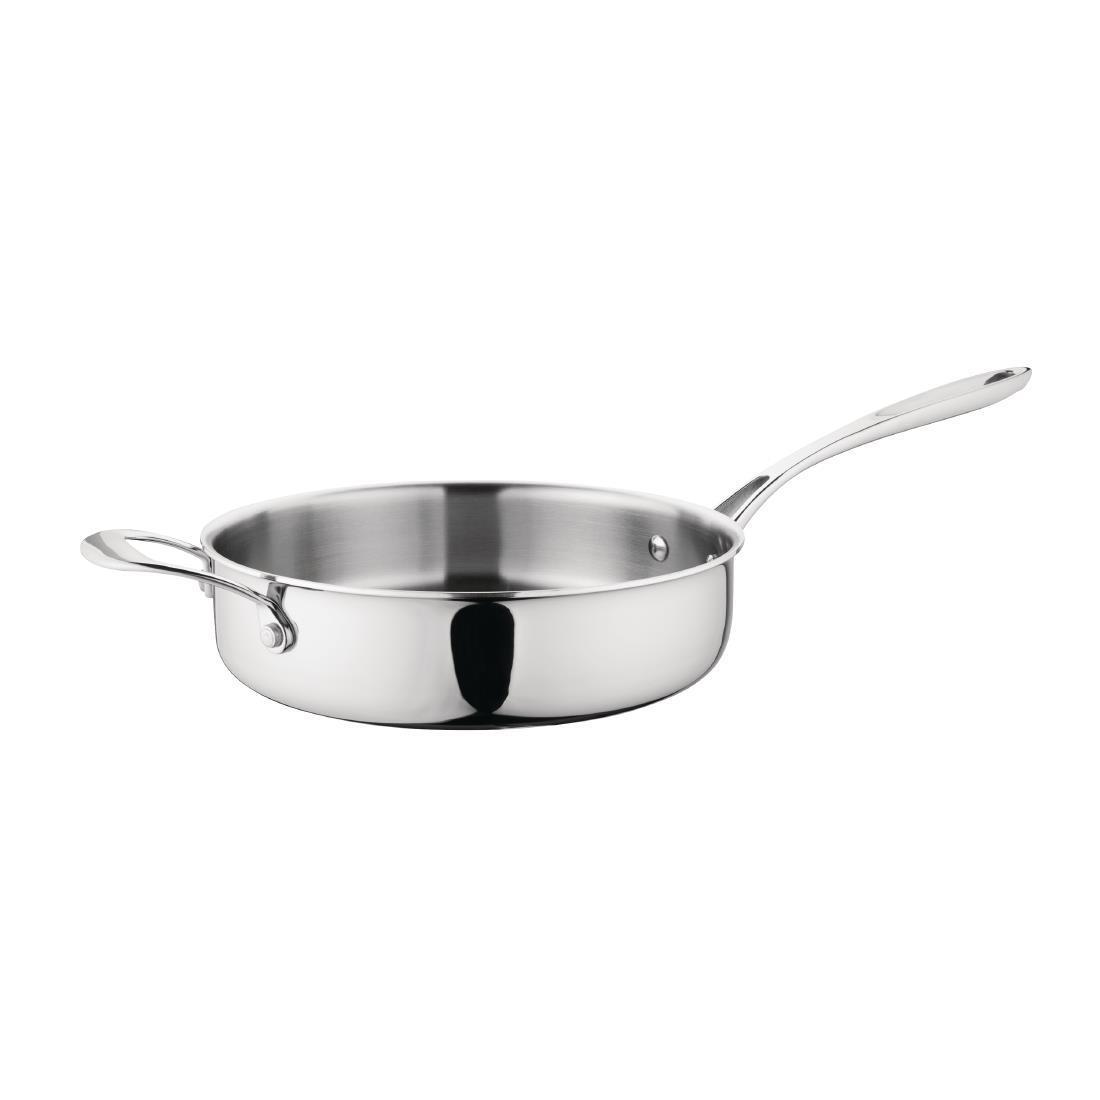 Vogue Tri Wall Saute Pan 240mm - Each - GG031